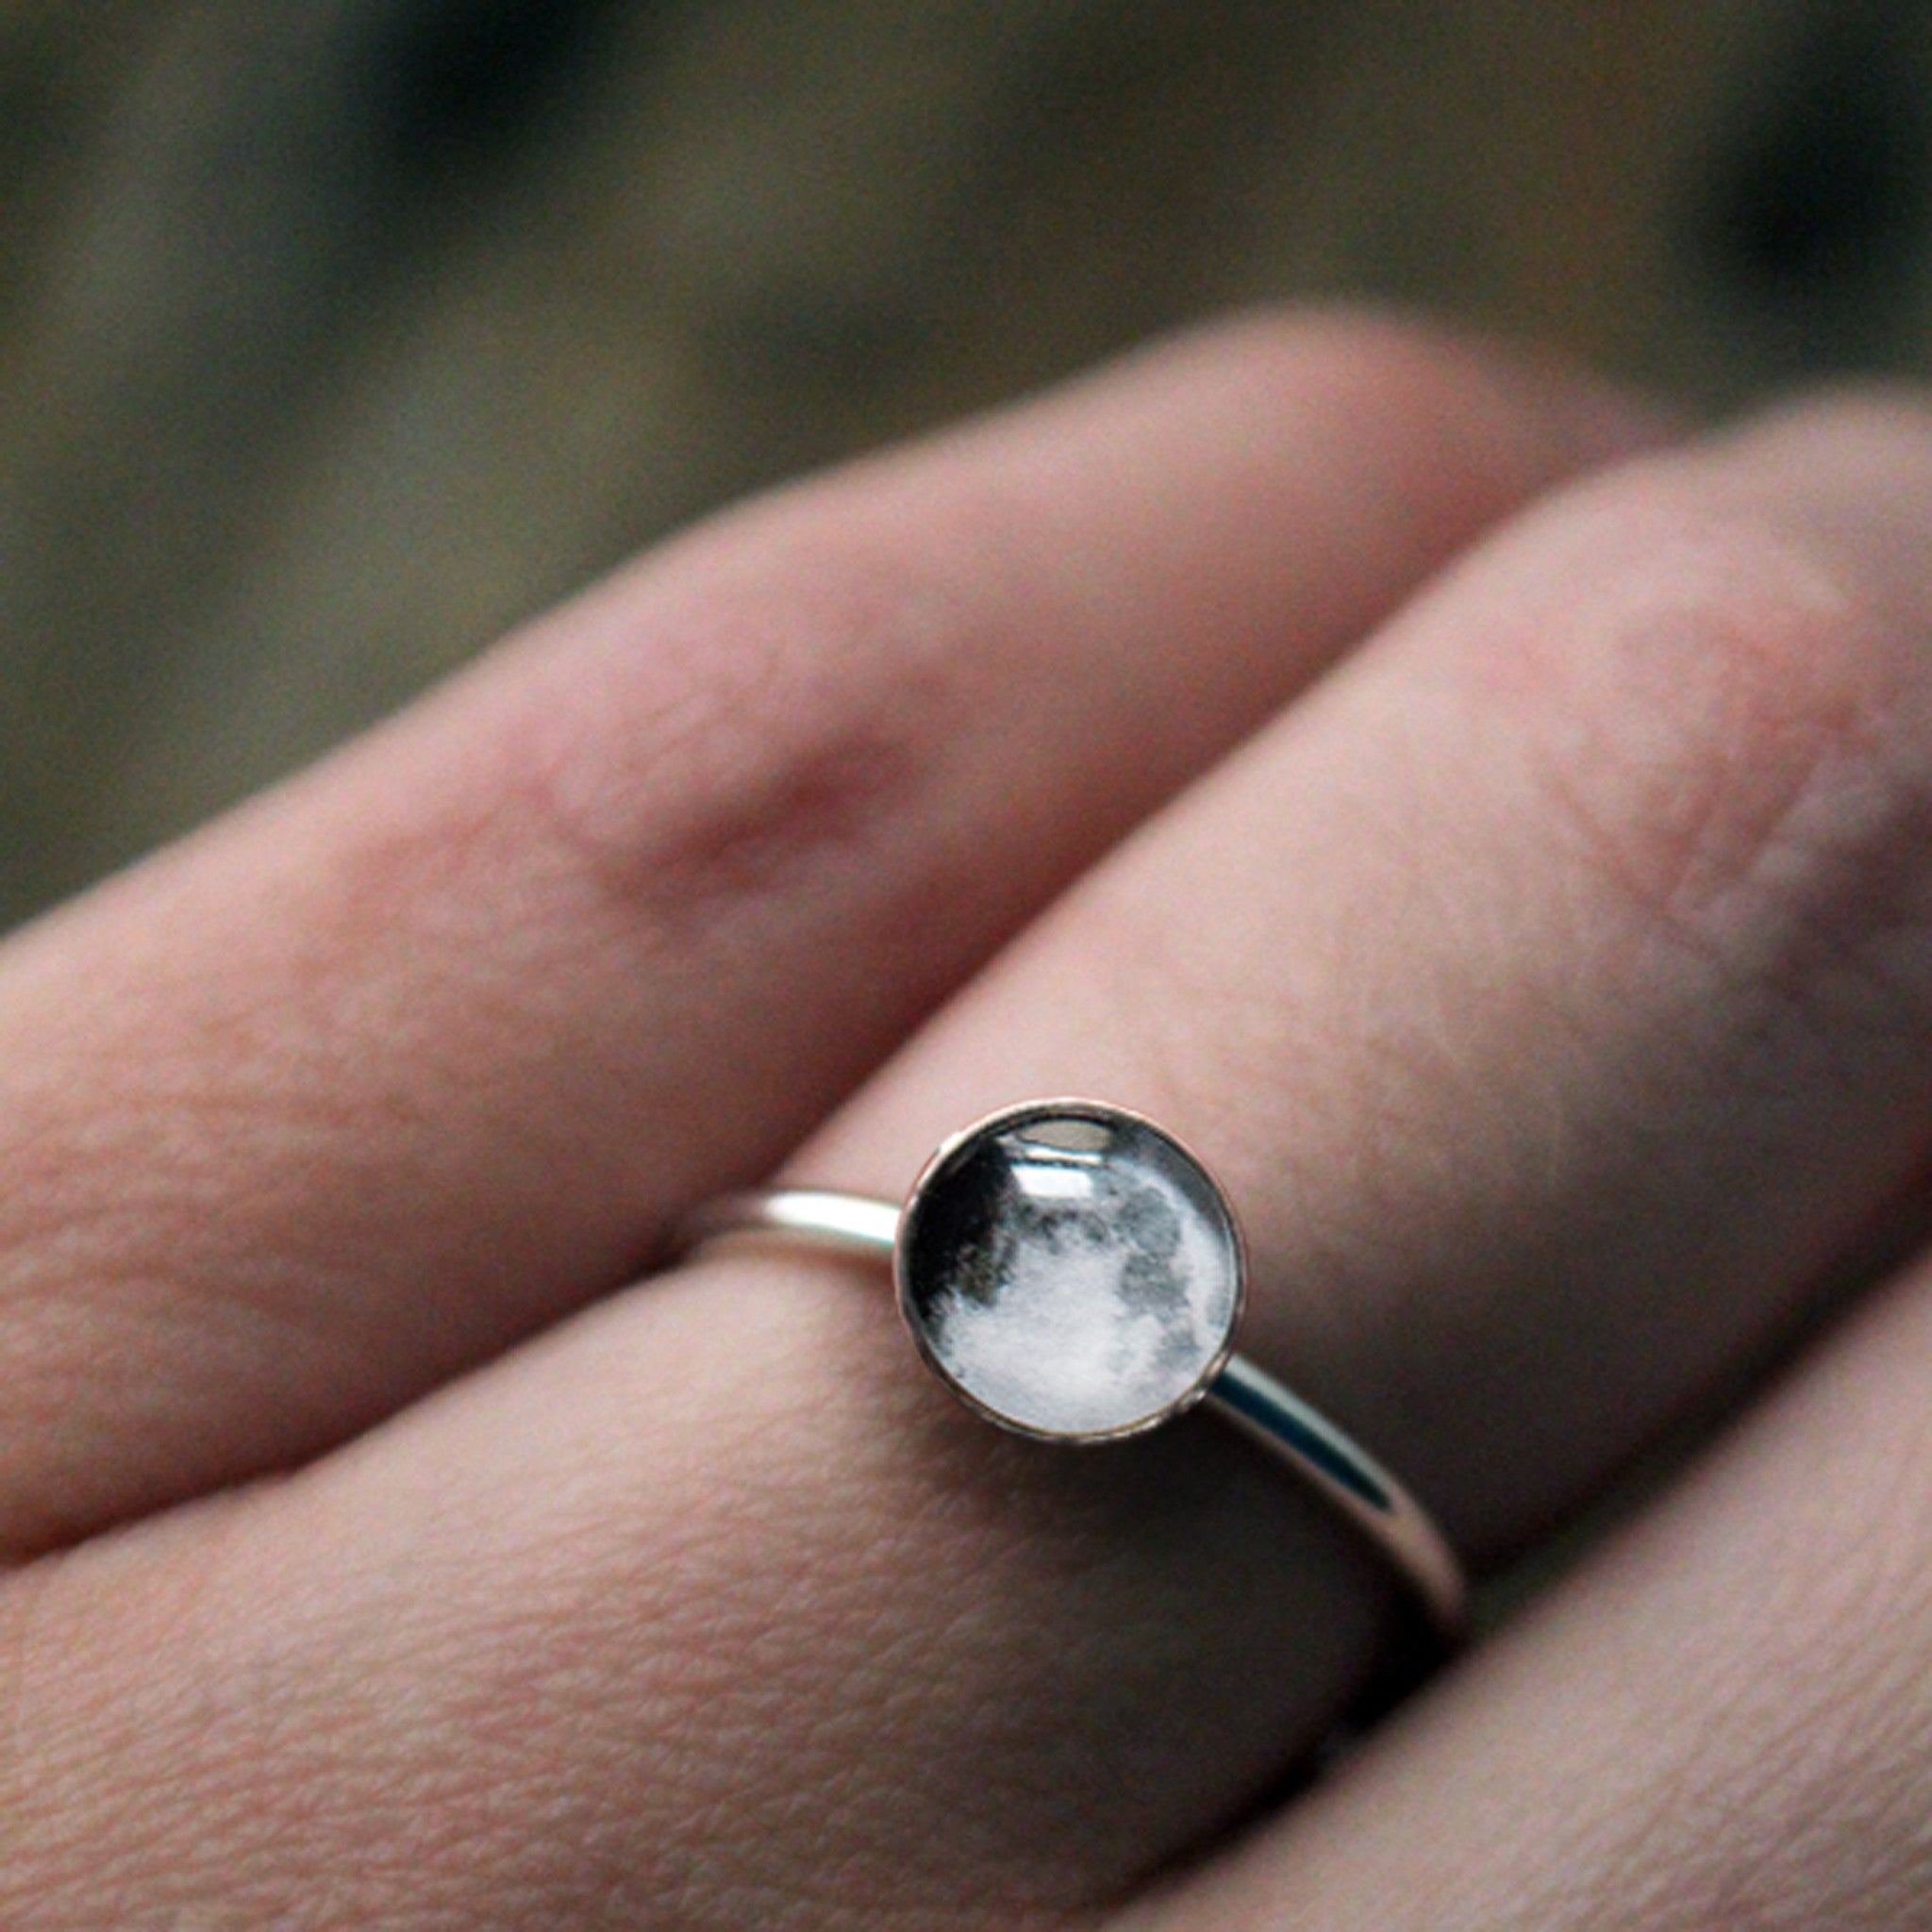 Personalized Birth Moon Ring in Sterling Silver - Made to order in US ring sizes using moon phase from date provided - Handmade custom moon phase jewelry by Yugen Tribe